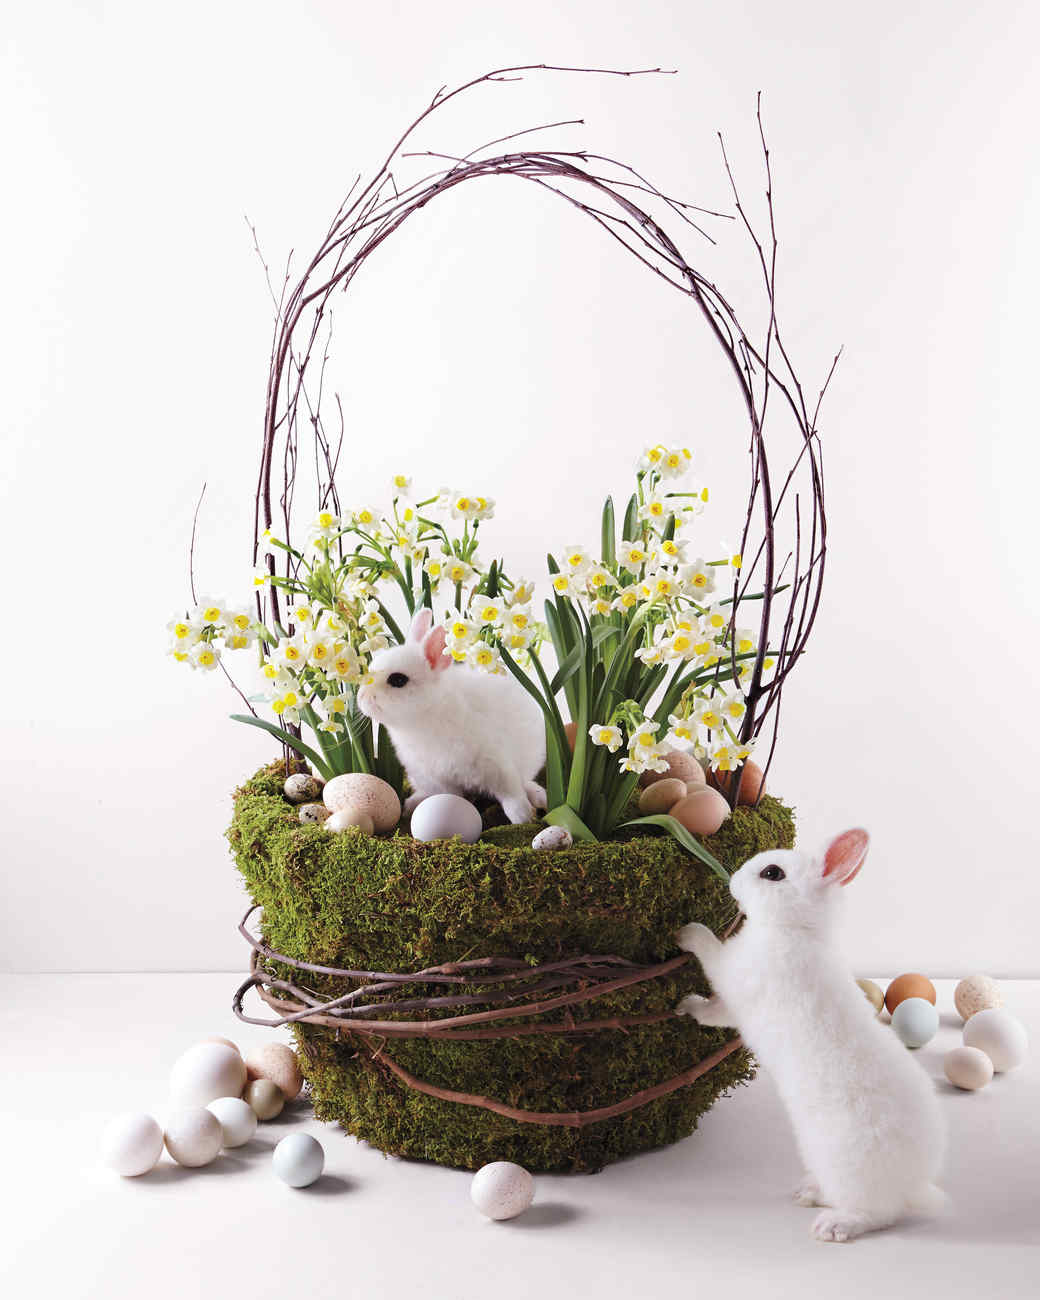 moss-basket-with-bunny-499comp-mld110852.jpg